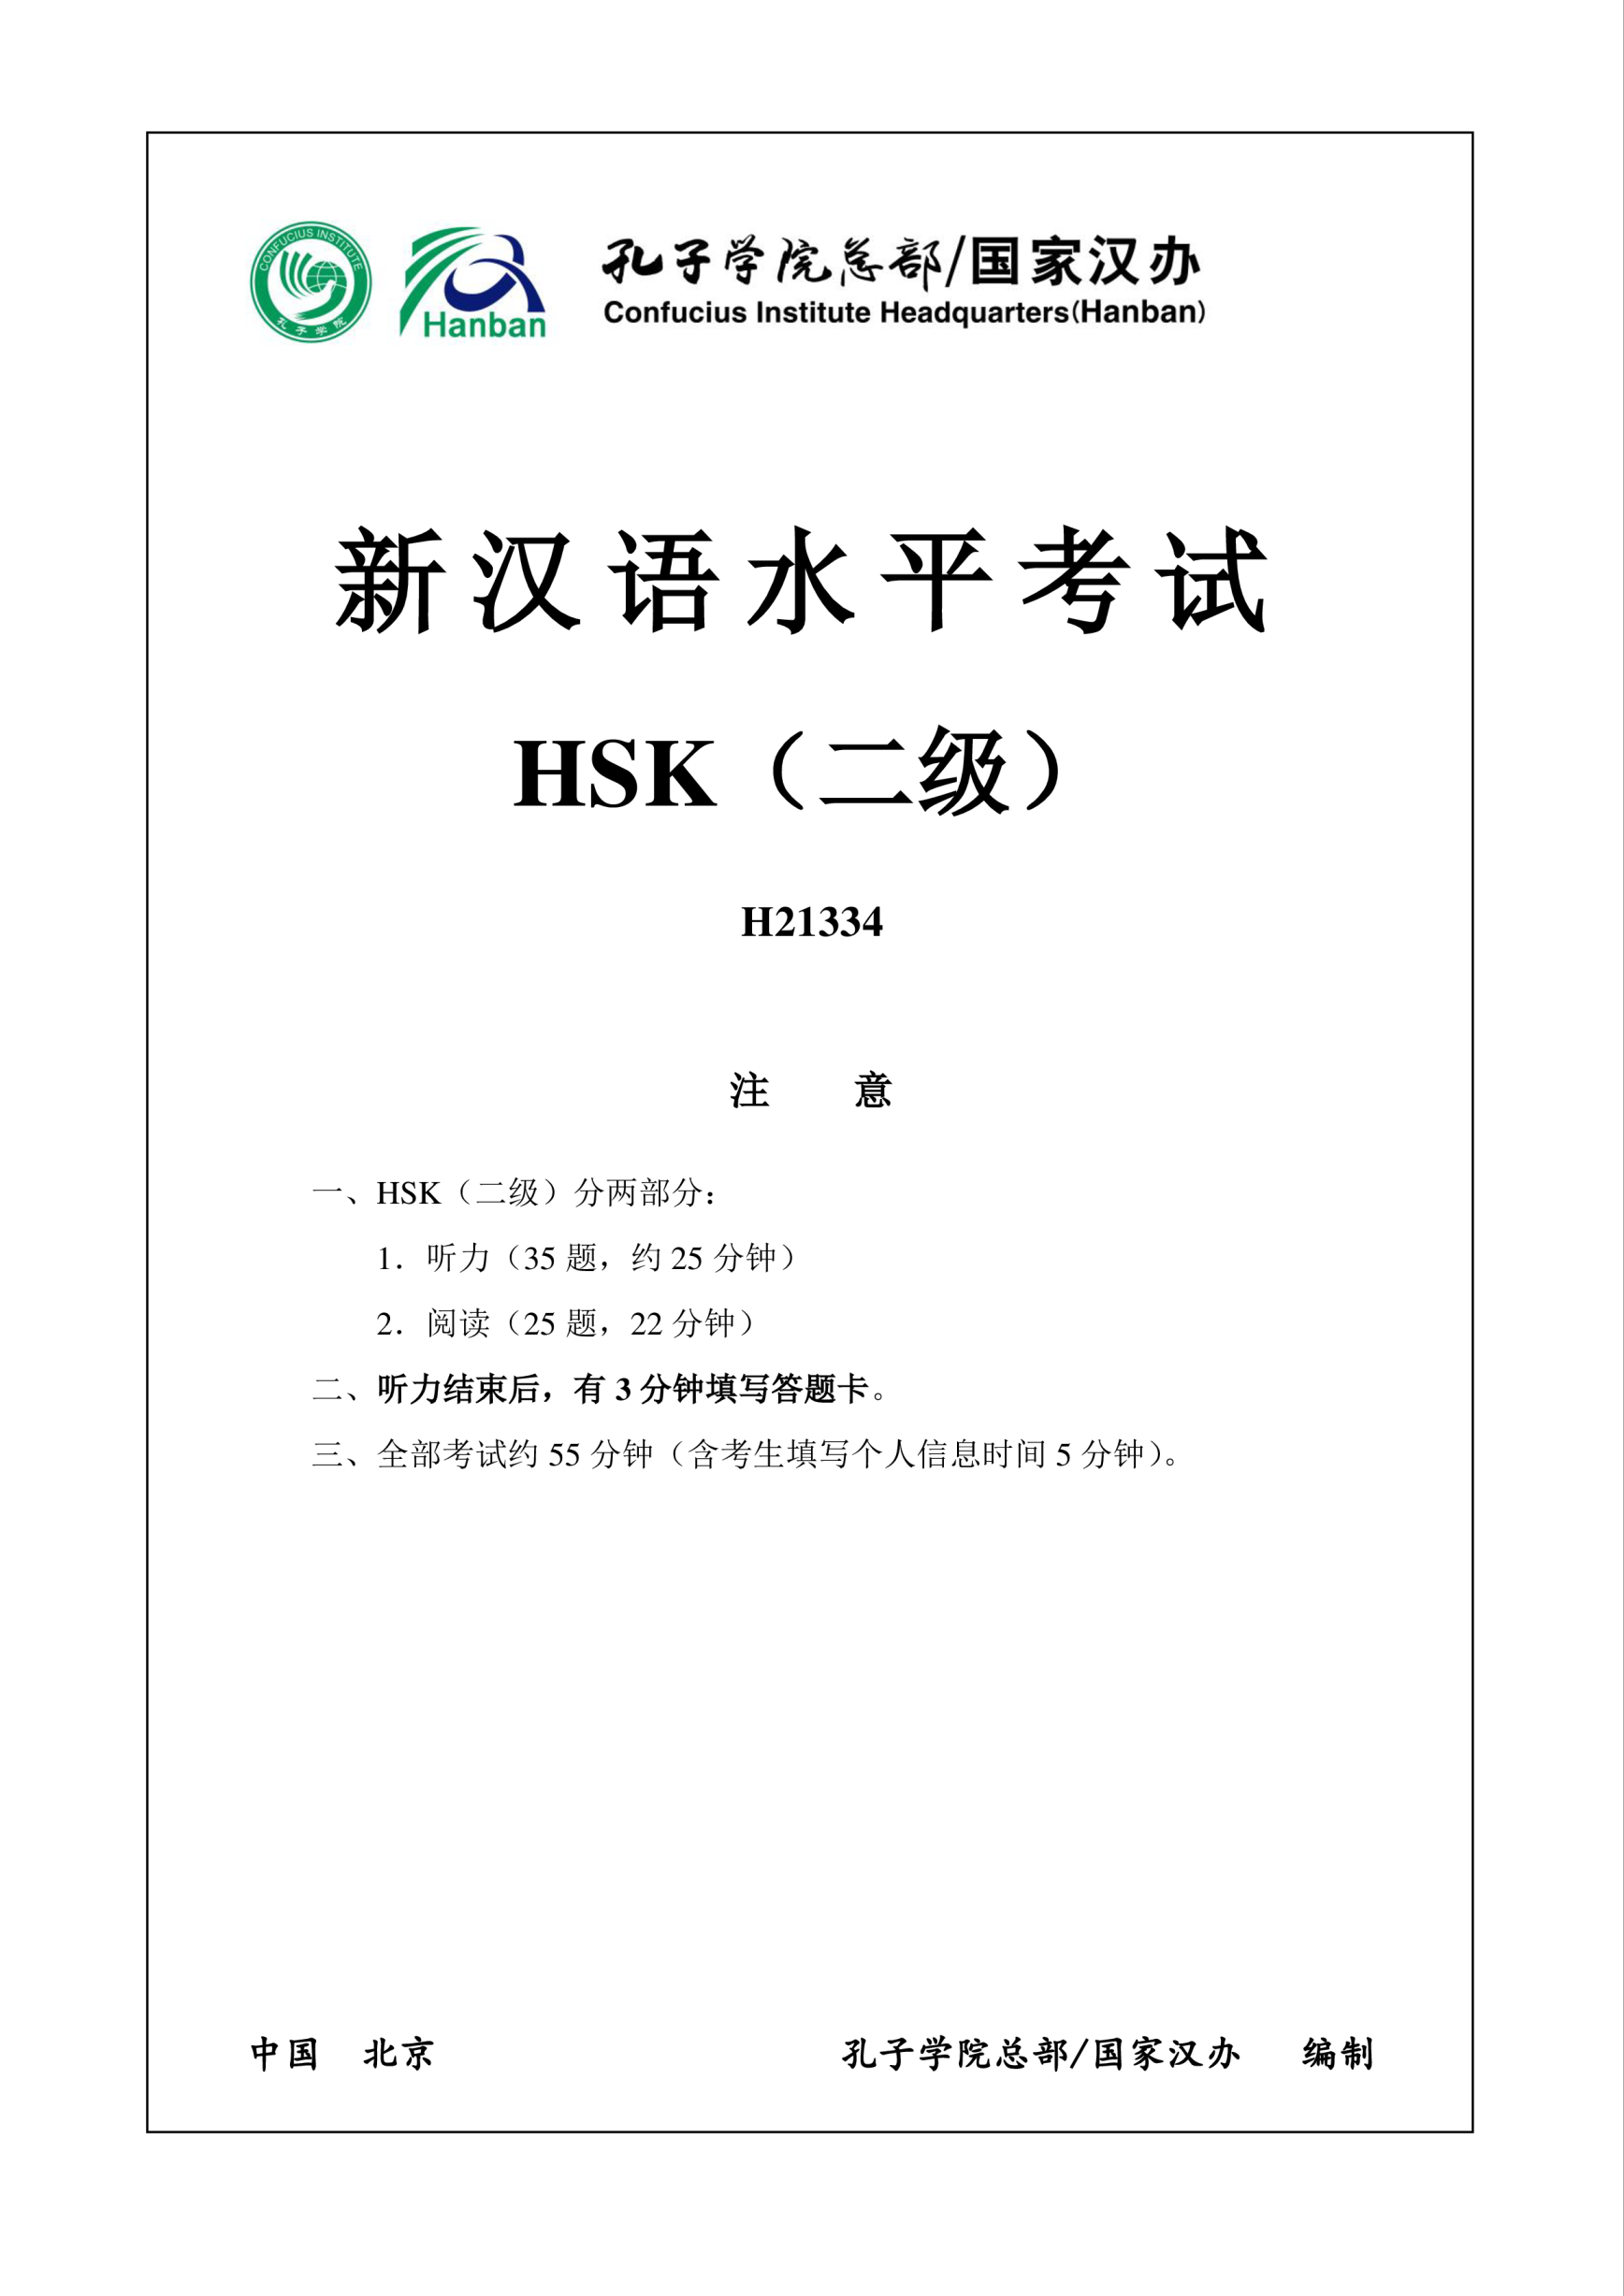 template preview imageHSK2 Chinese Exam including Answers # HSK2 H21334